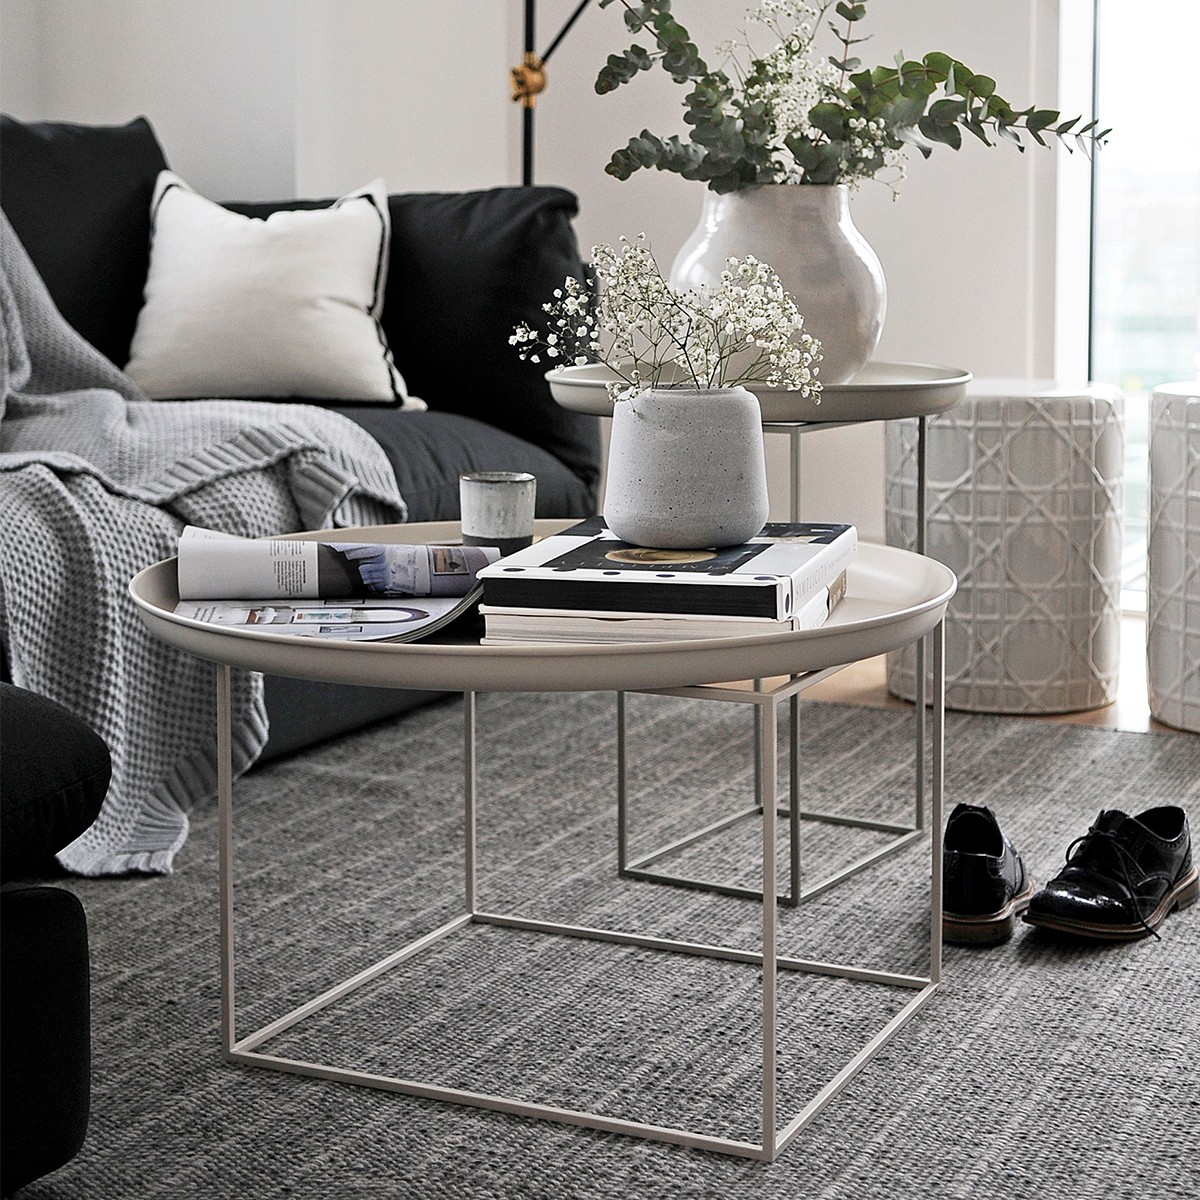 Why Adding A Rug Under Dining Table Sets Is A Must: So Versatile Maxi Coffee Table